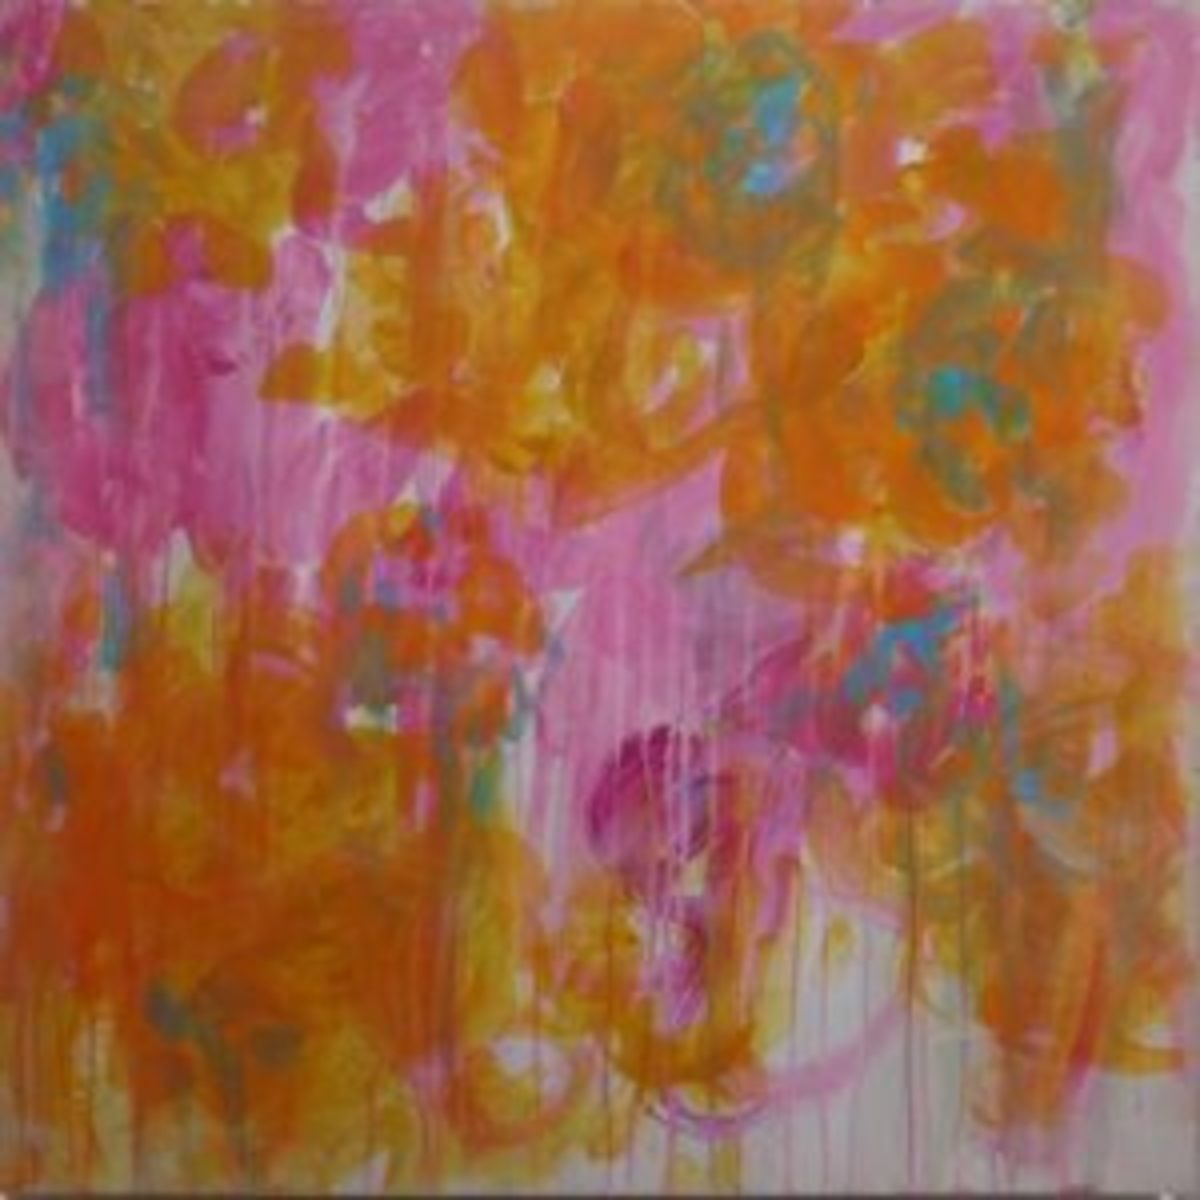 Twombly floral abstract